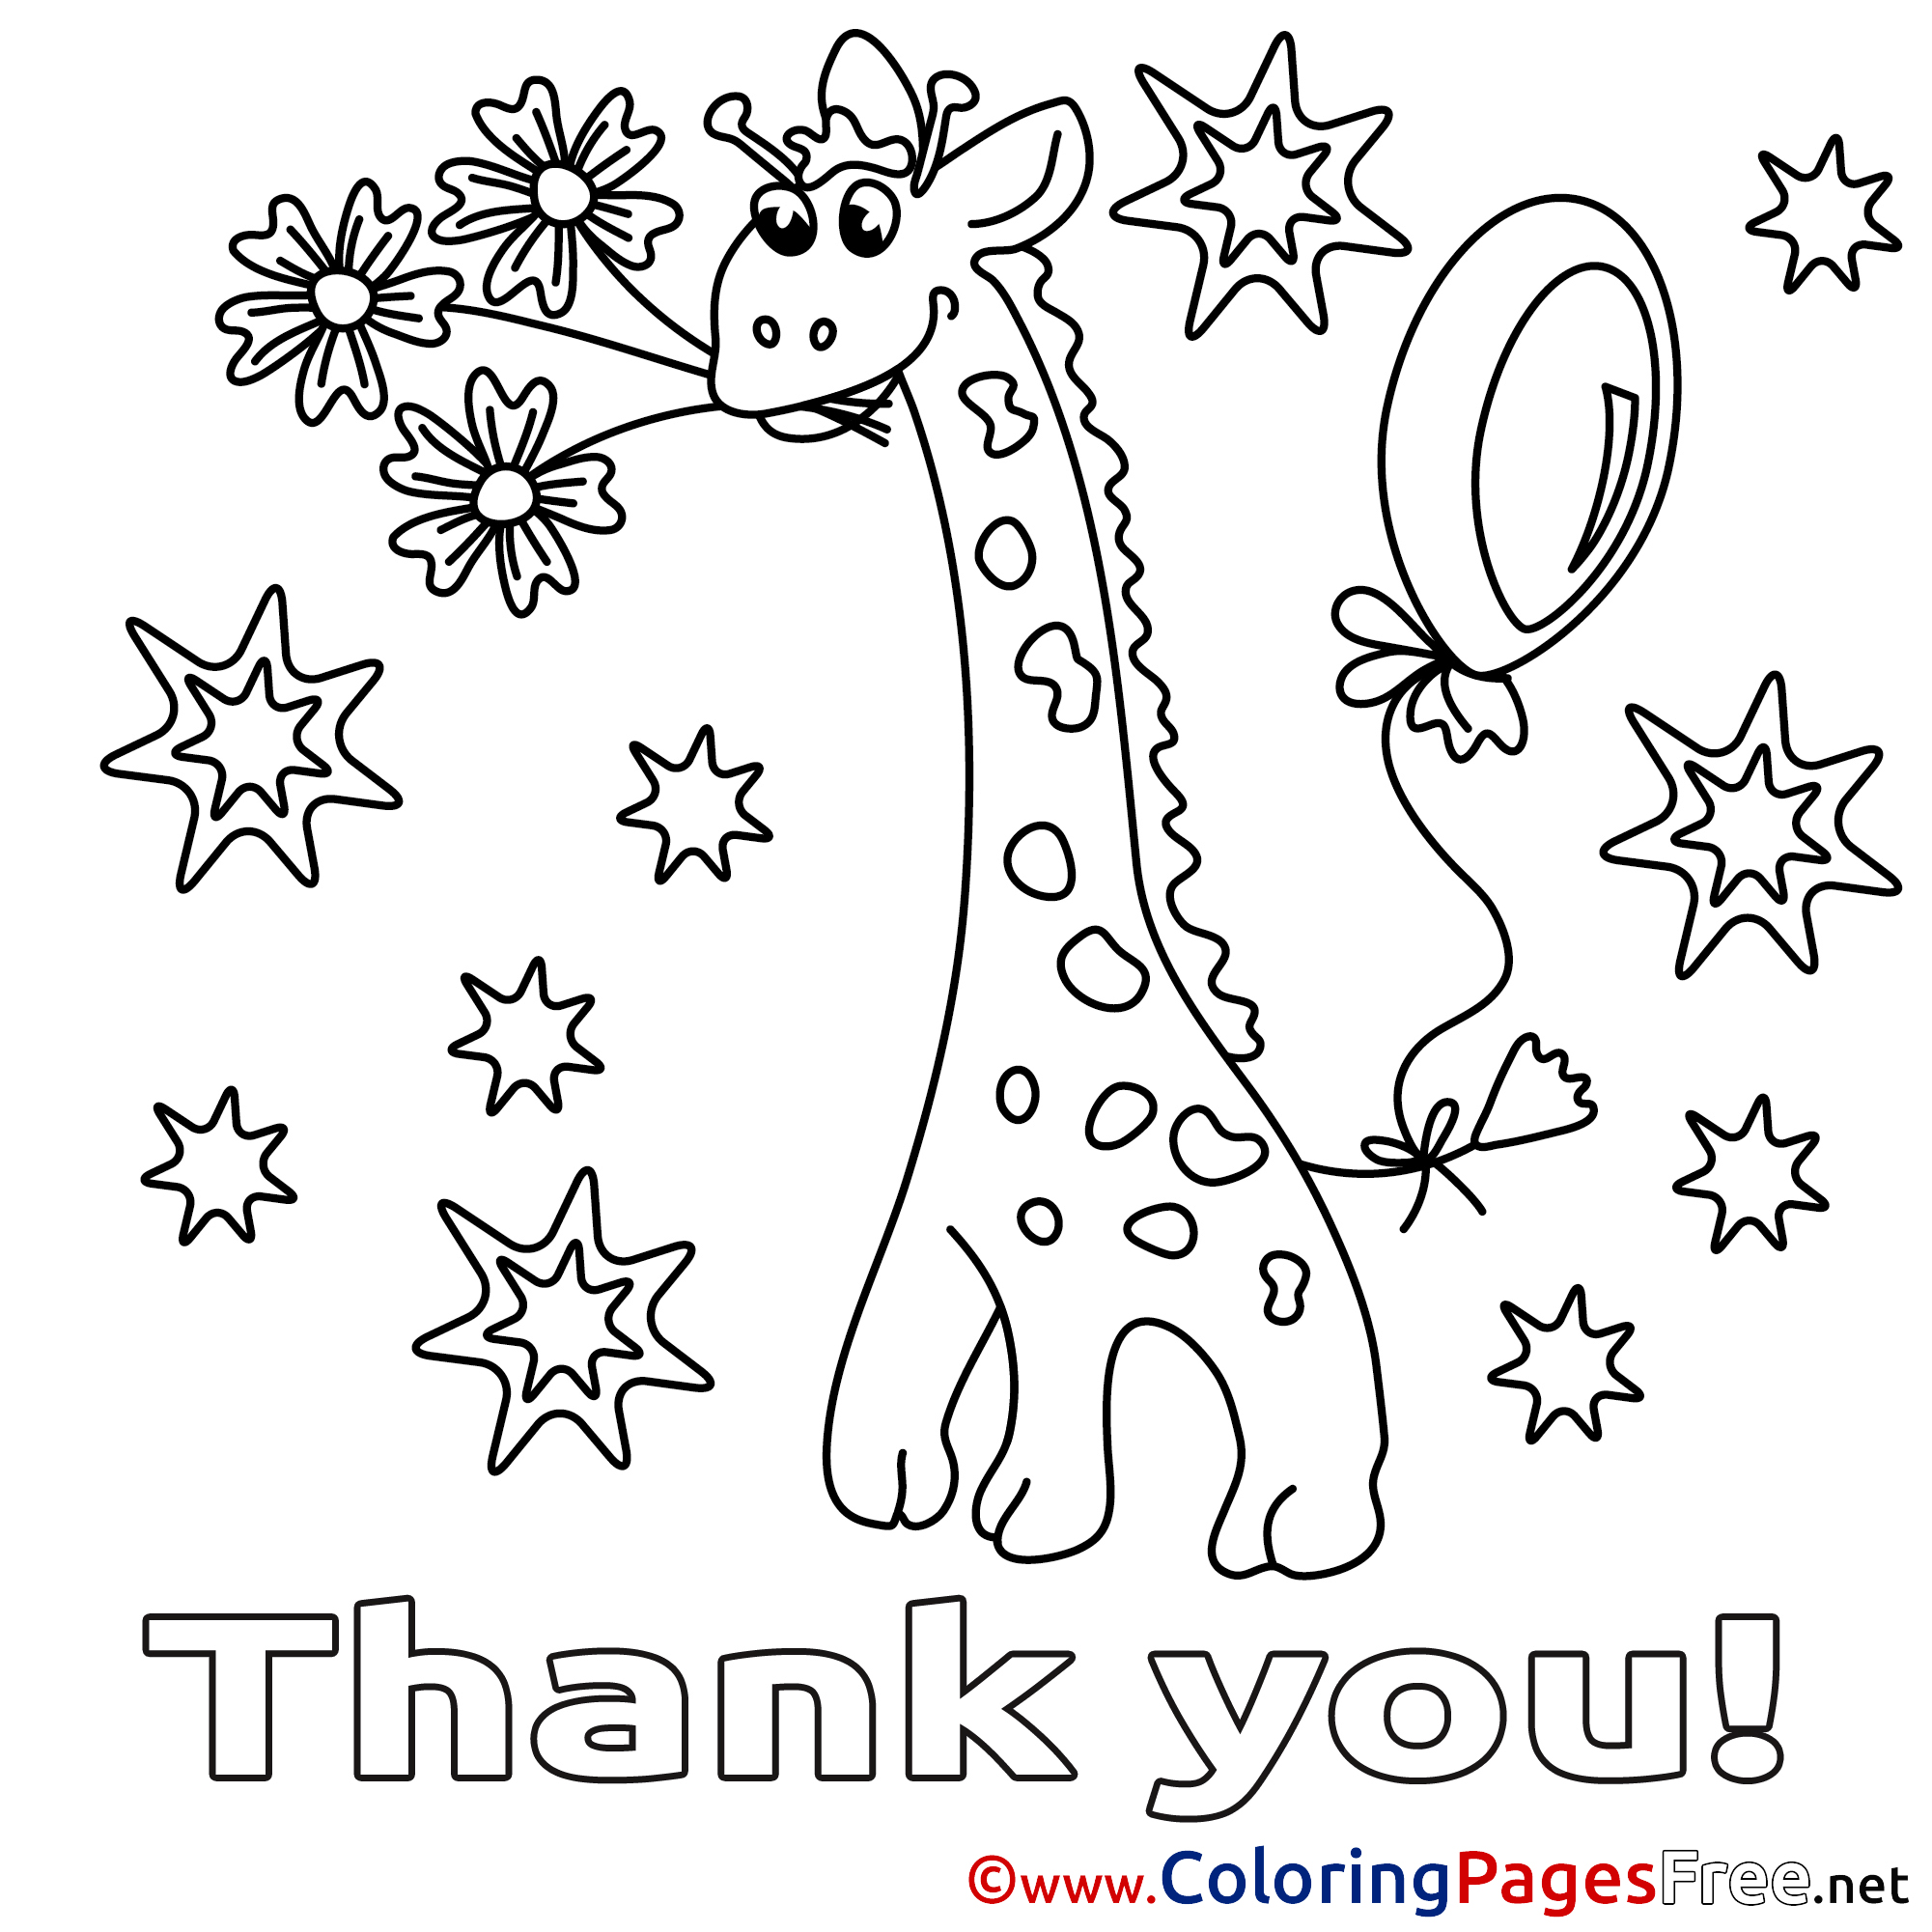 free thank you coloring pages thank you coloring pages free at getcoloringscom free pages you free coloring thank